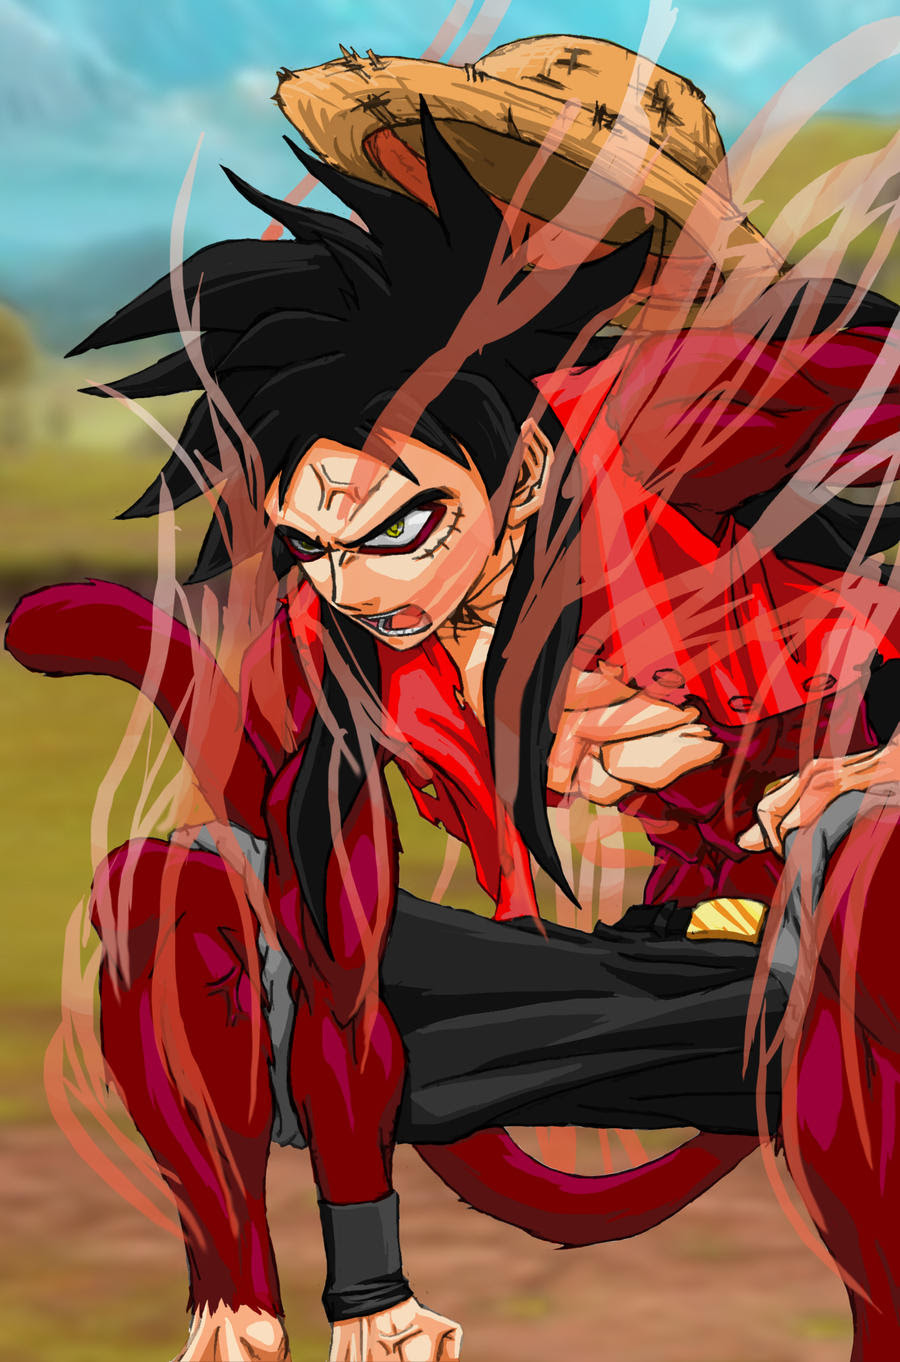 Gear second, gear 4, tank man, gear 5, snake man, pound man. Gear 5 Luffy Luffy Gear 5 Wallpapers Wallpaper Cave The One Piece Team Is The The Luffy 5 Passionate Group Japanesetoptatto